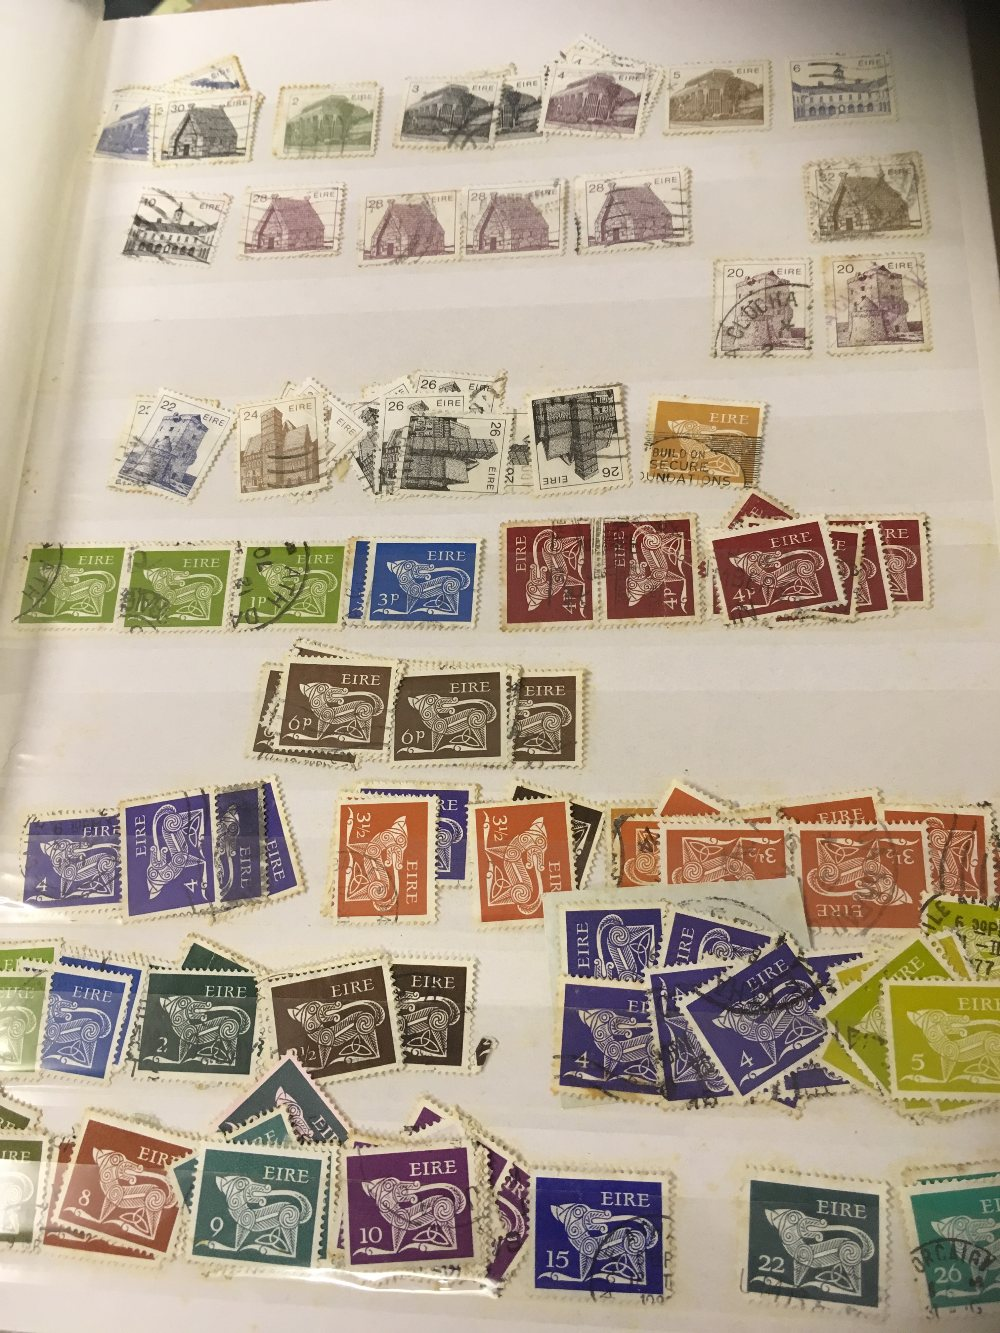 Lot 49 - STAMPS : Mixed box of albums and stock books including Channel Islands covers,